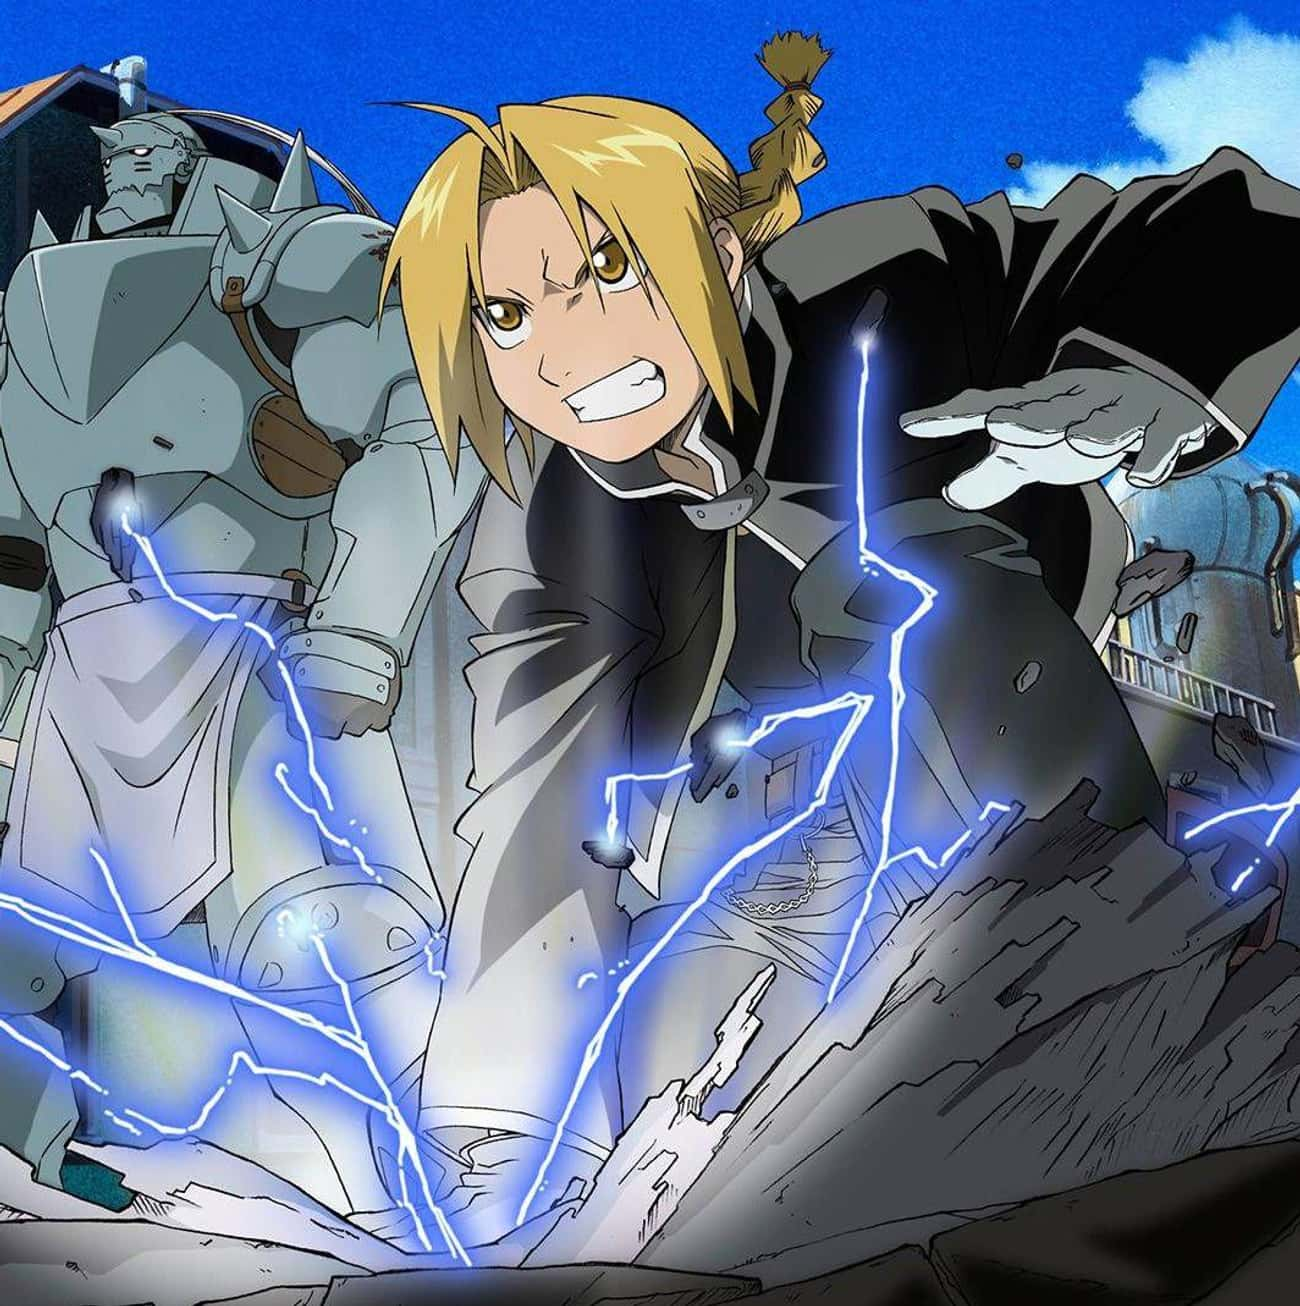 Alchemy - Fullmetal Alchemist is listed (or ranked) 4 on the list The 25+ Anime Superpowers You Want Most